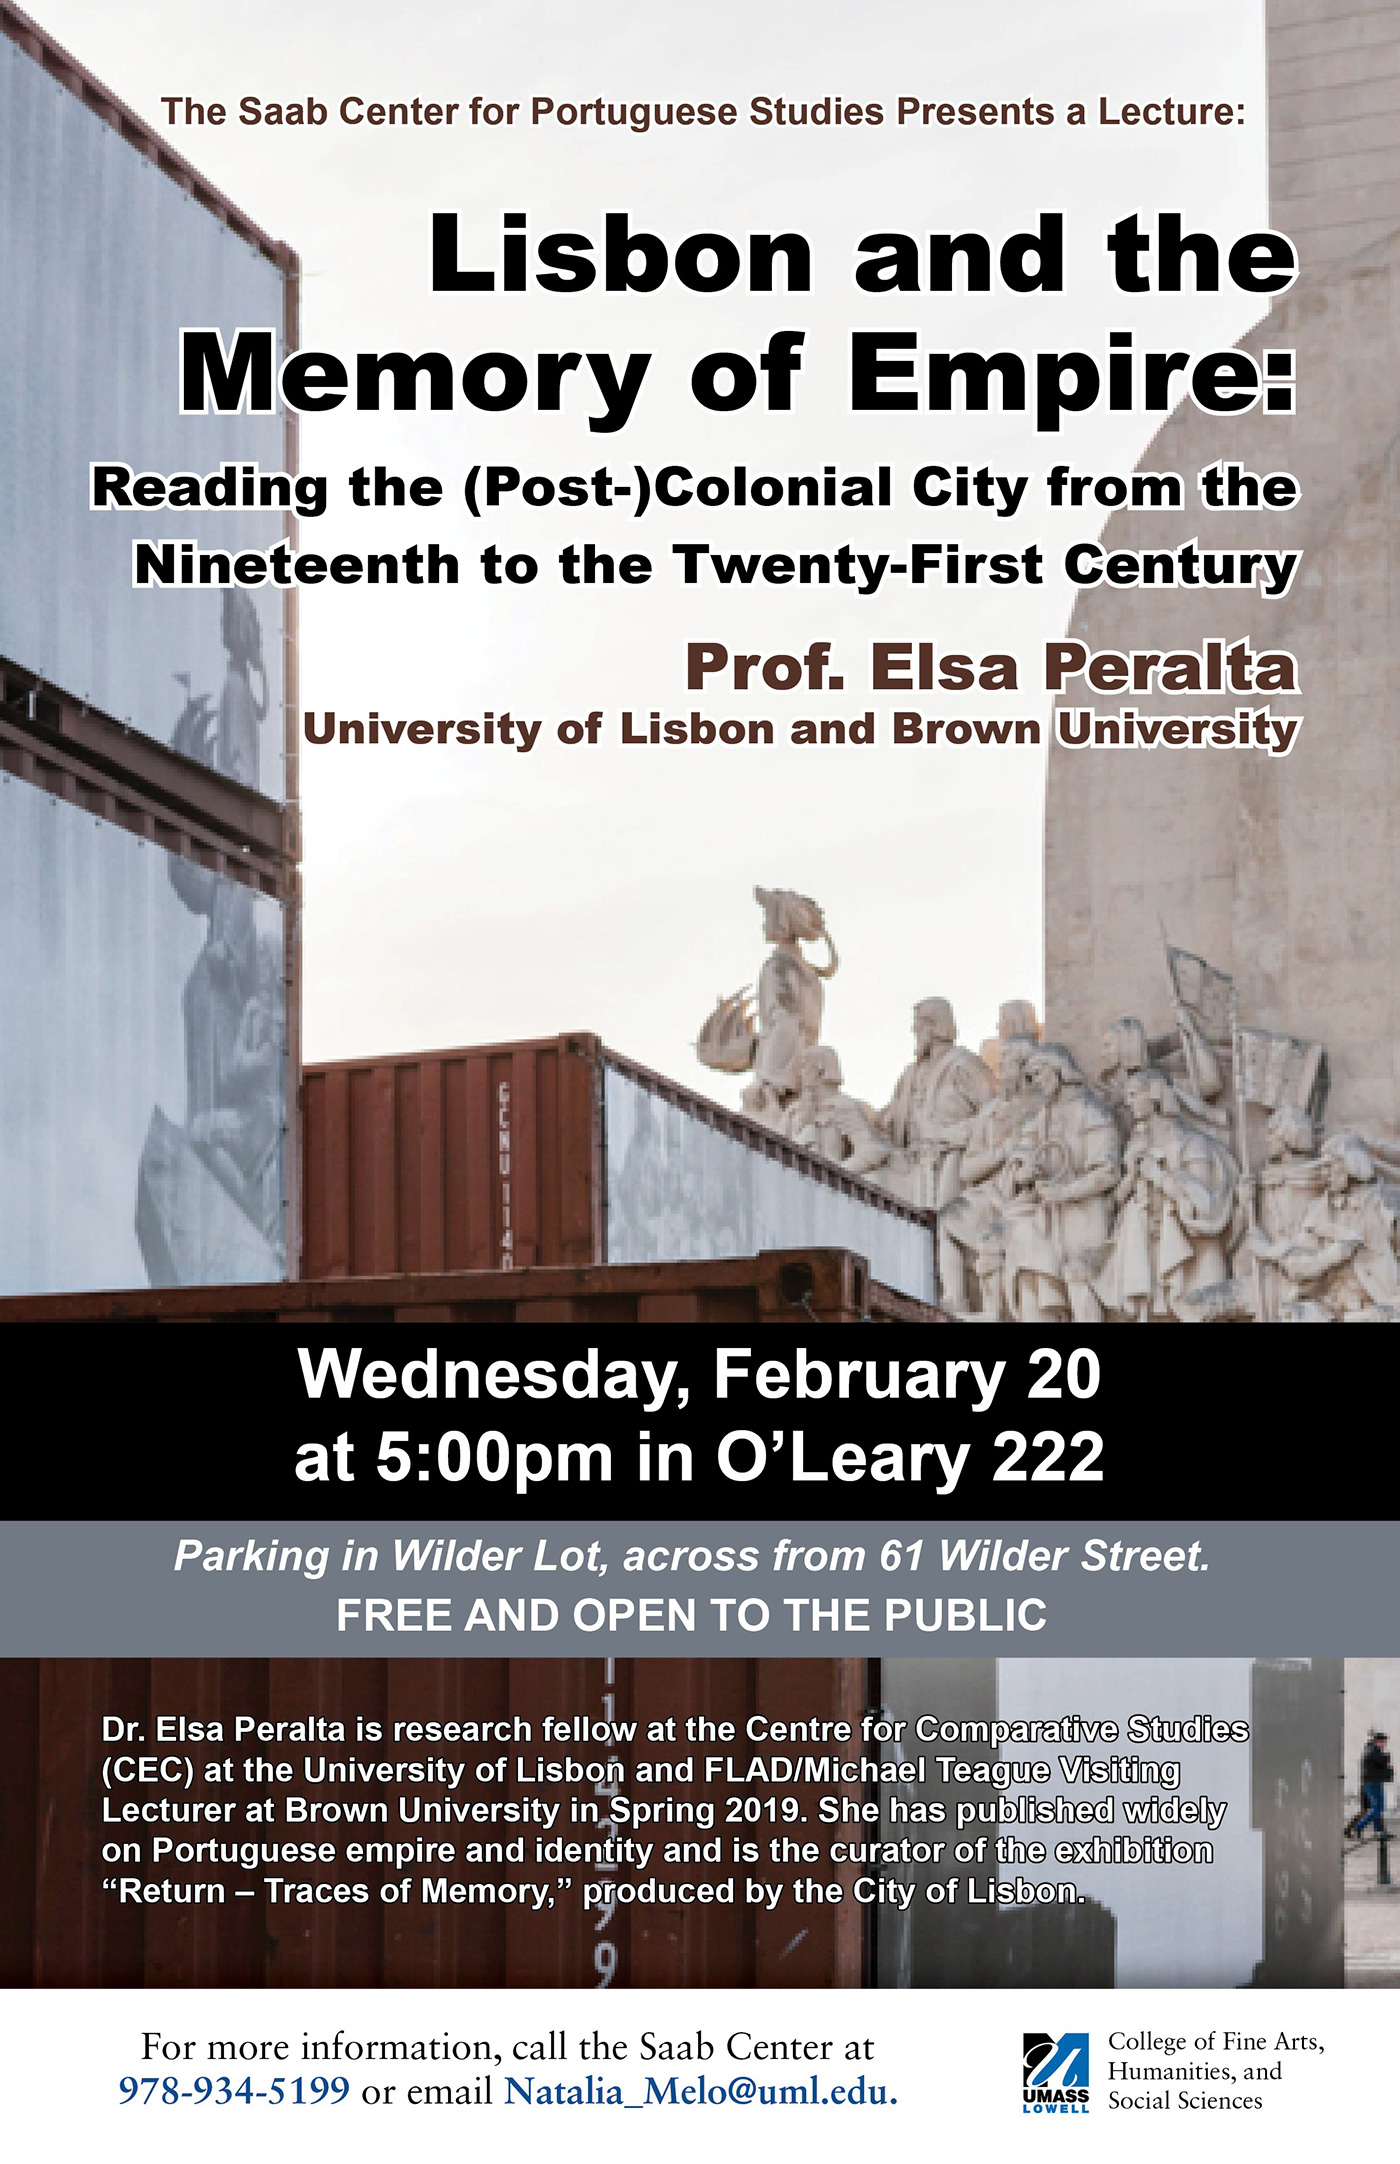 Poster for: Lecture on Lisbon and the Memory of Empire: Reading the (Post-)Colonial City from the Nineteenth to the Twenty-First Century by Prof. Elsa Peralta, University of Lisbon and Brown University at UMass Lowell's O'Leary Library on Wednesday, February 20, 2019 at 5 p.m.